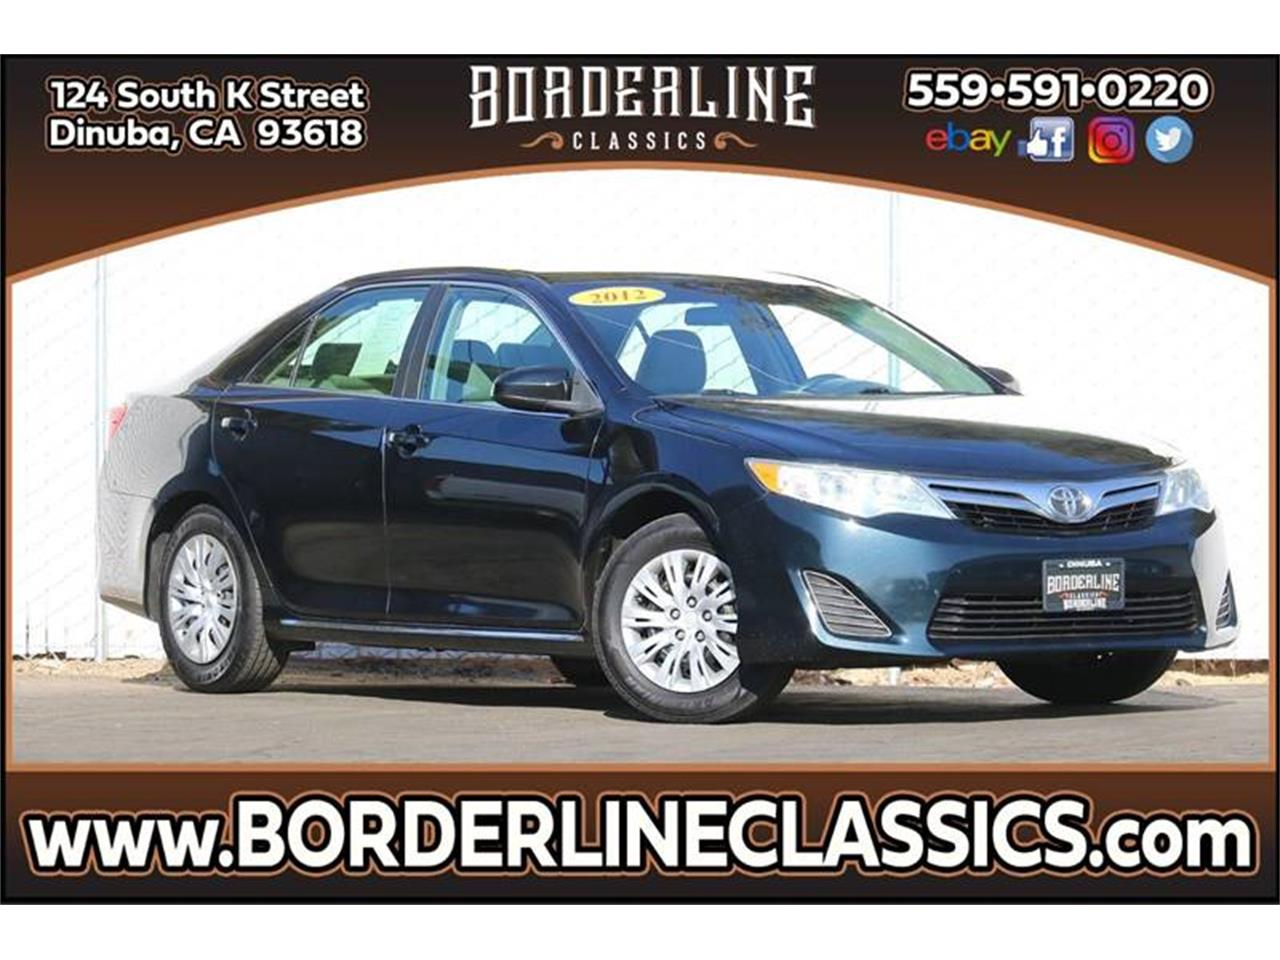 for sale 2012 toyota camry in dinuba, california cars - dinuba, ca at geebo